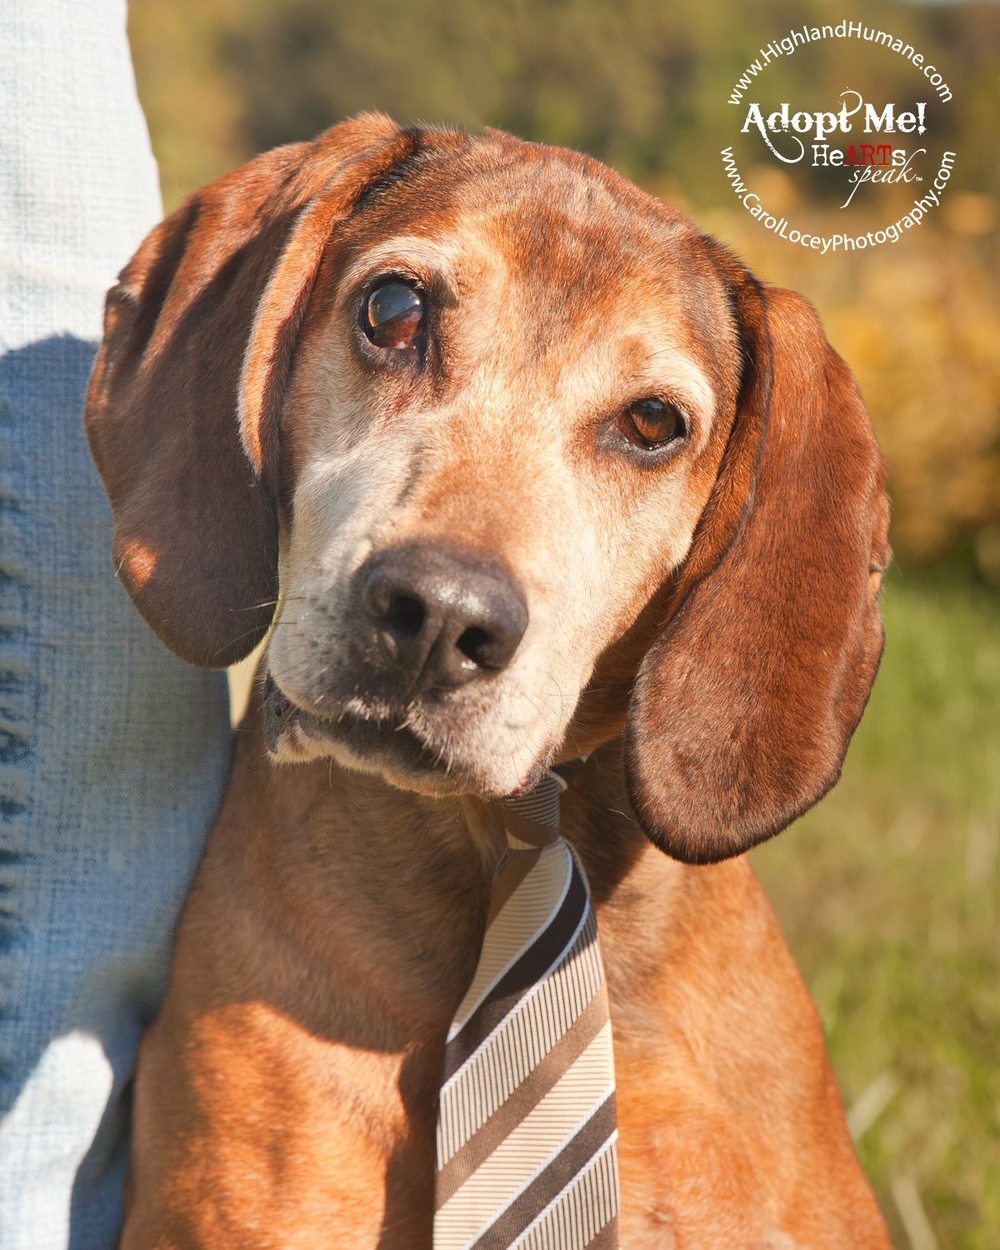 Dan the Coonhound.  He was a Facebook sensation when his story hit social media.  Dan had spent about 10 of his 14 years at the Highland County Humane Shelter.  Luckily, the perfect family for Dan stepped up and adopted him.  I'm told he is now cuddling with his new owners on their sofa and taking daily walks on their 300 acre farm.  I hope your golden years are the best you've ever known Dan.